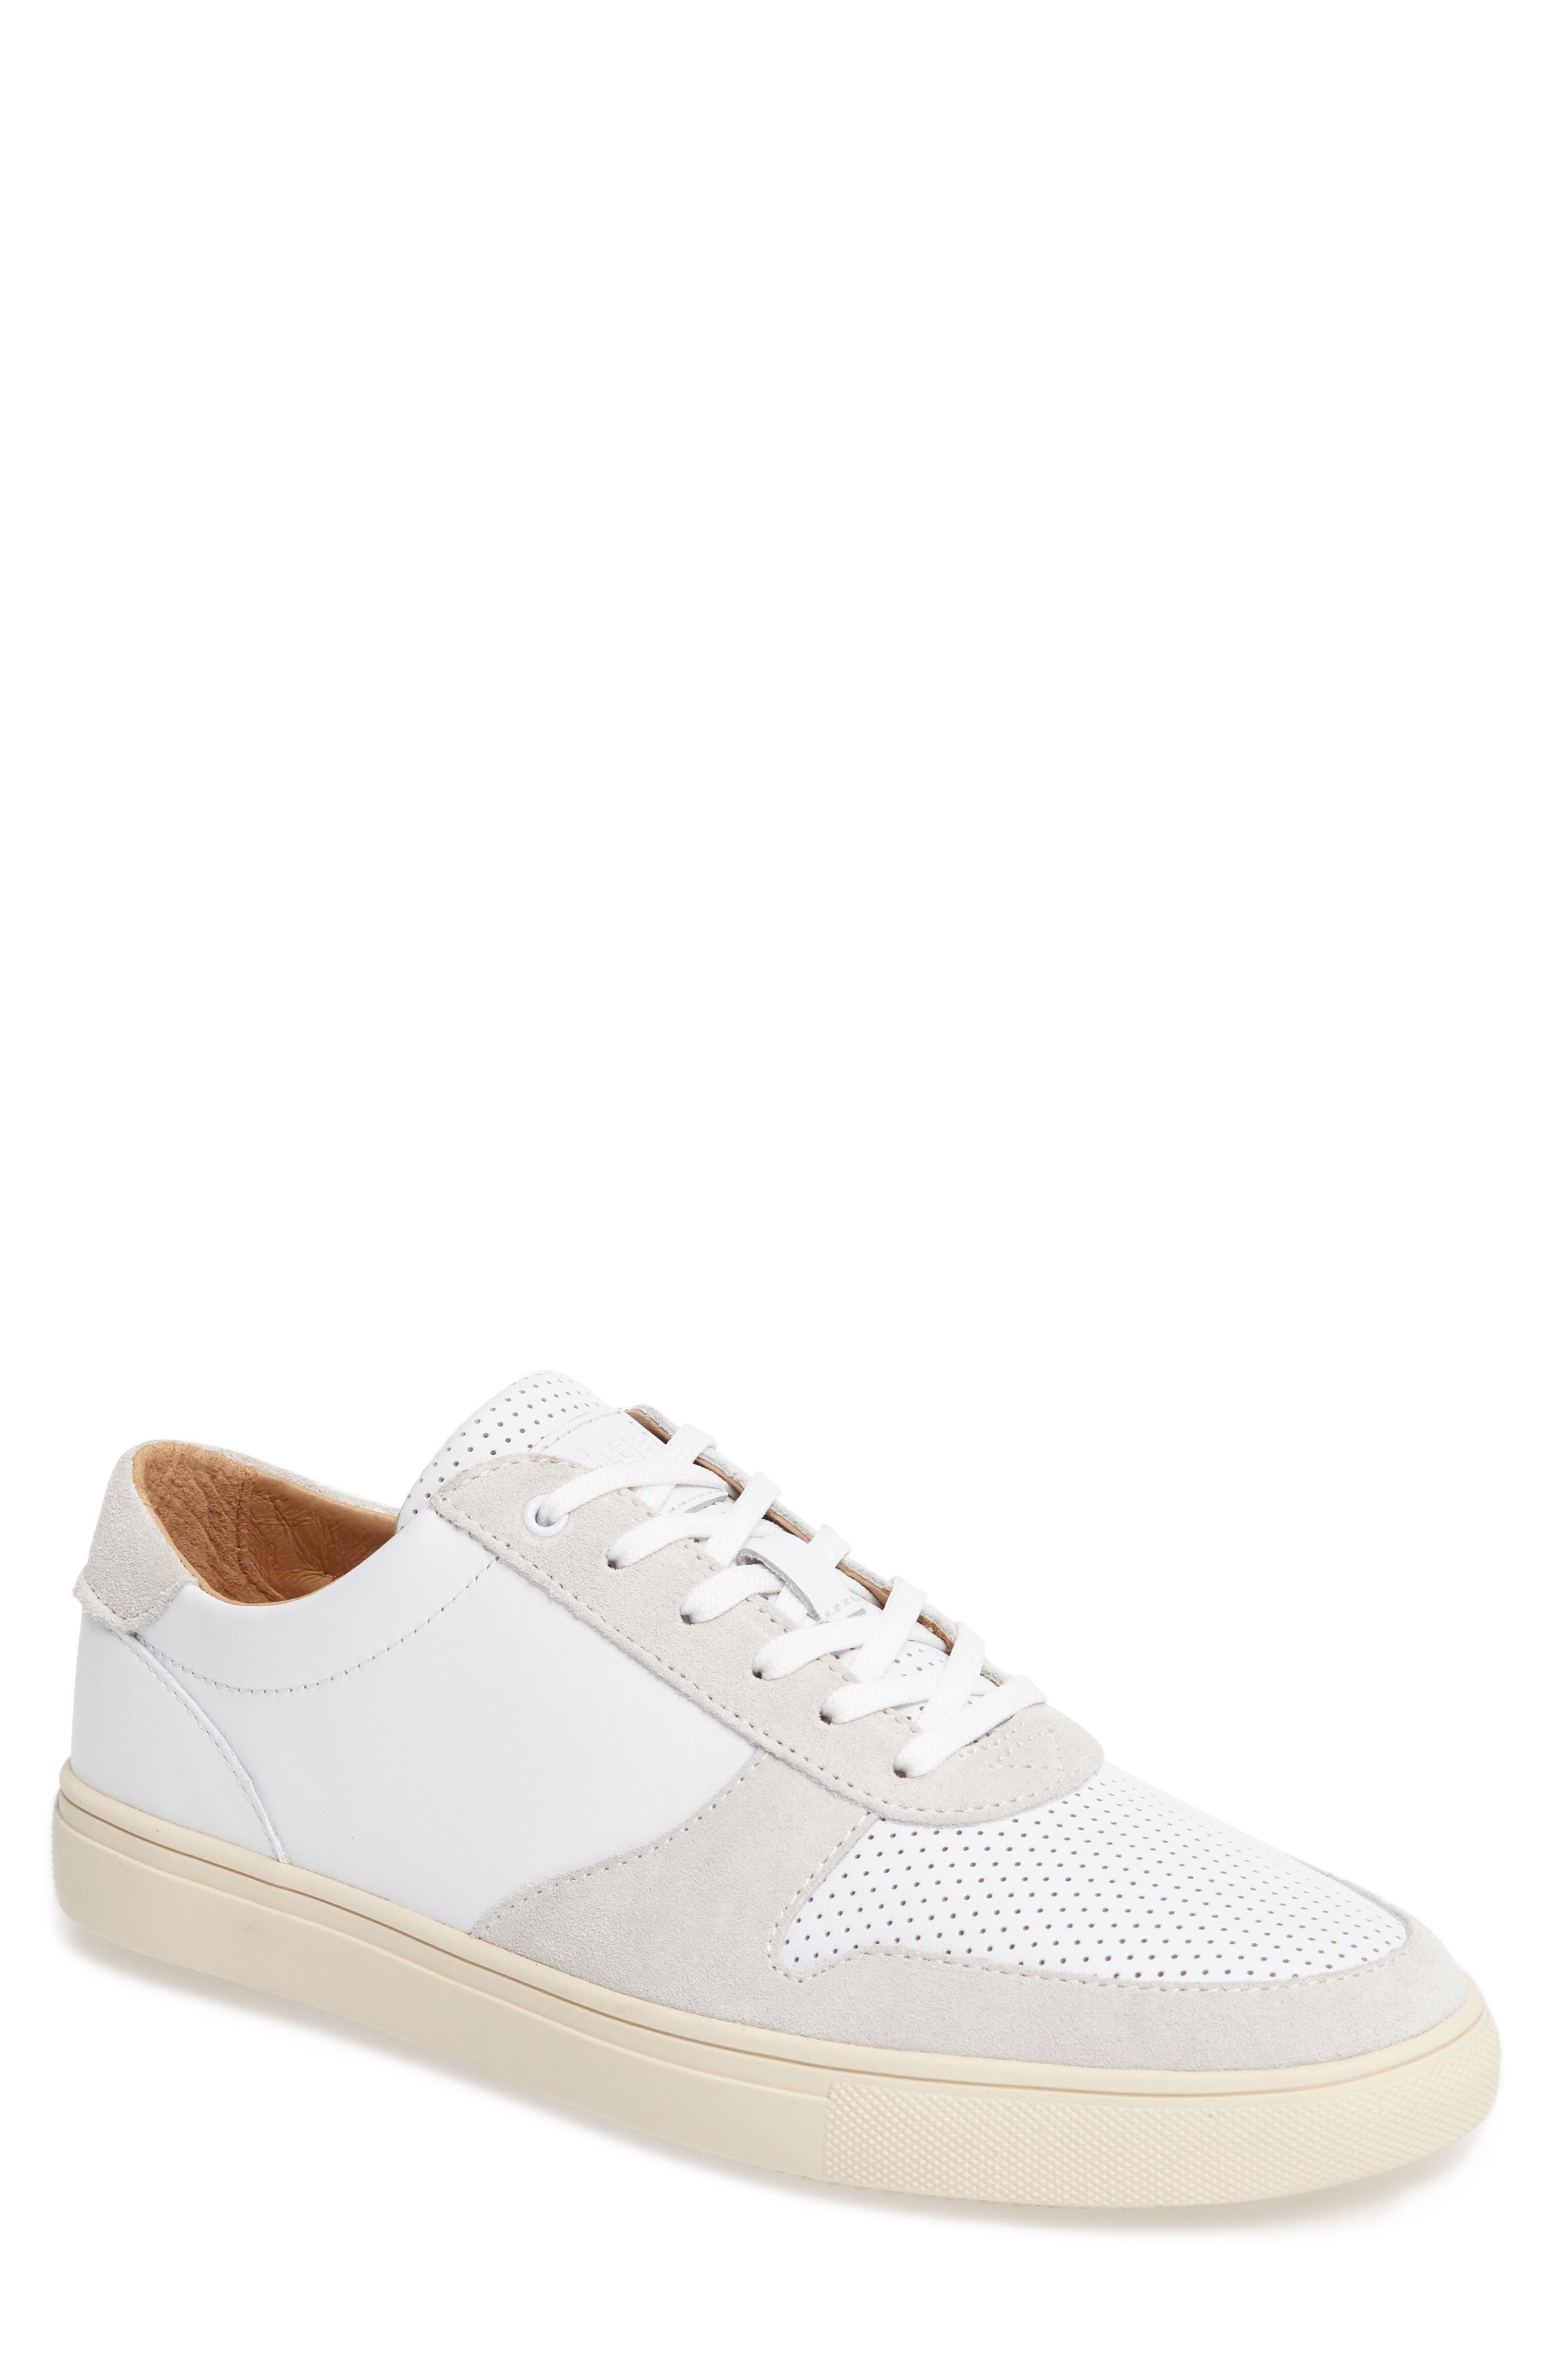 'Gregory' Sneaker,                         Main,                         color, White Leather